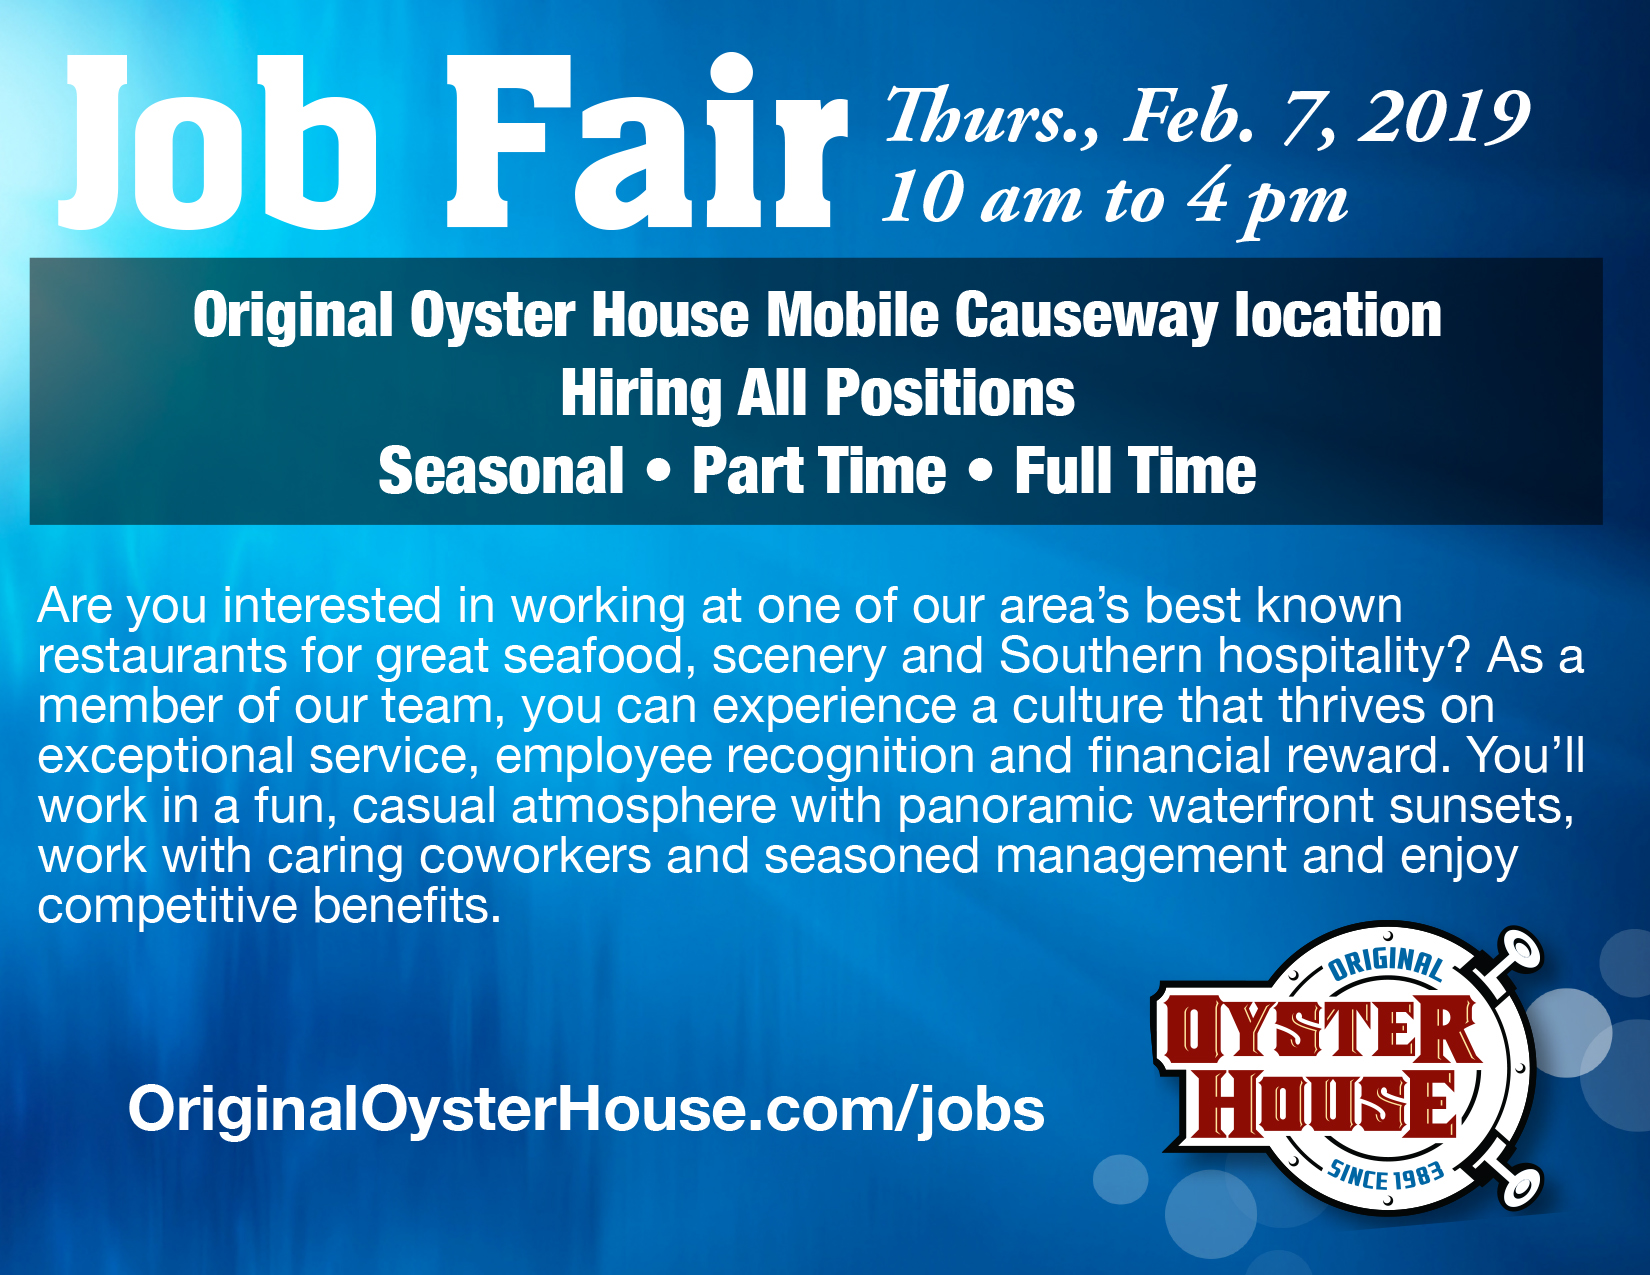 Job Fair on the Mobile Causeway